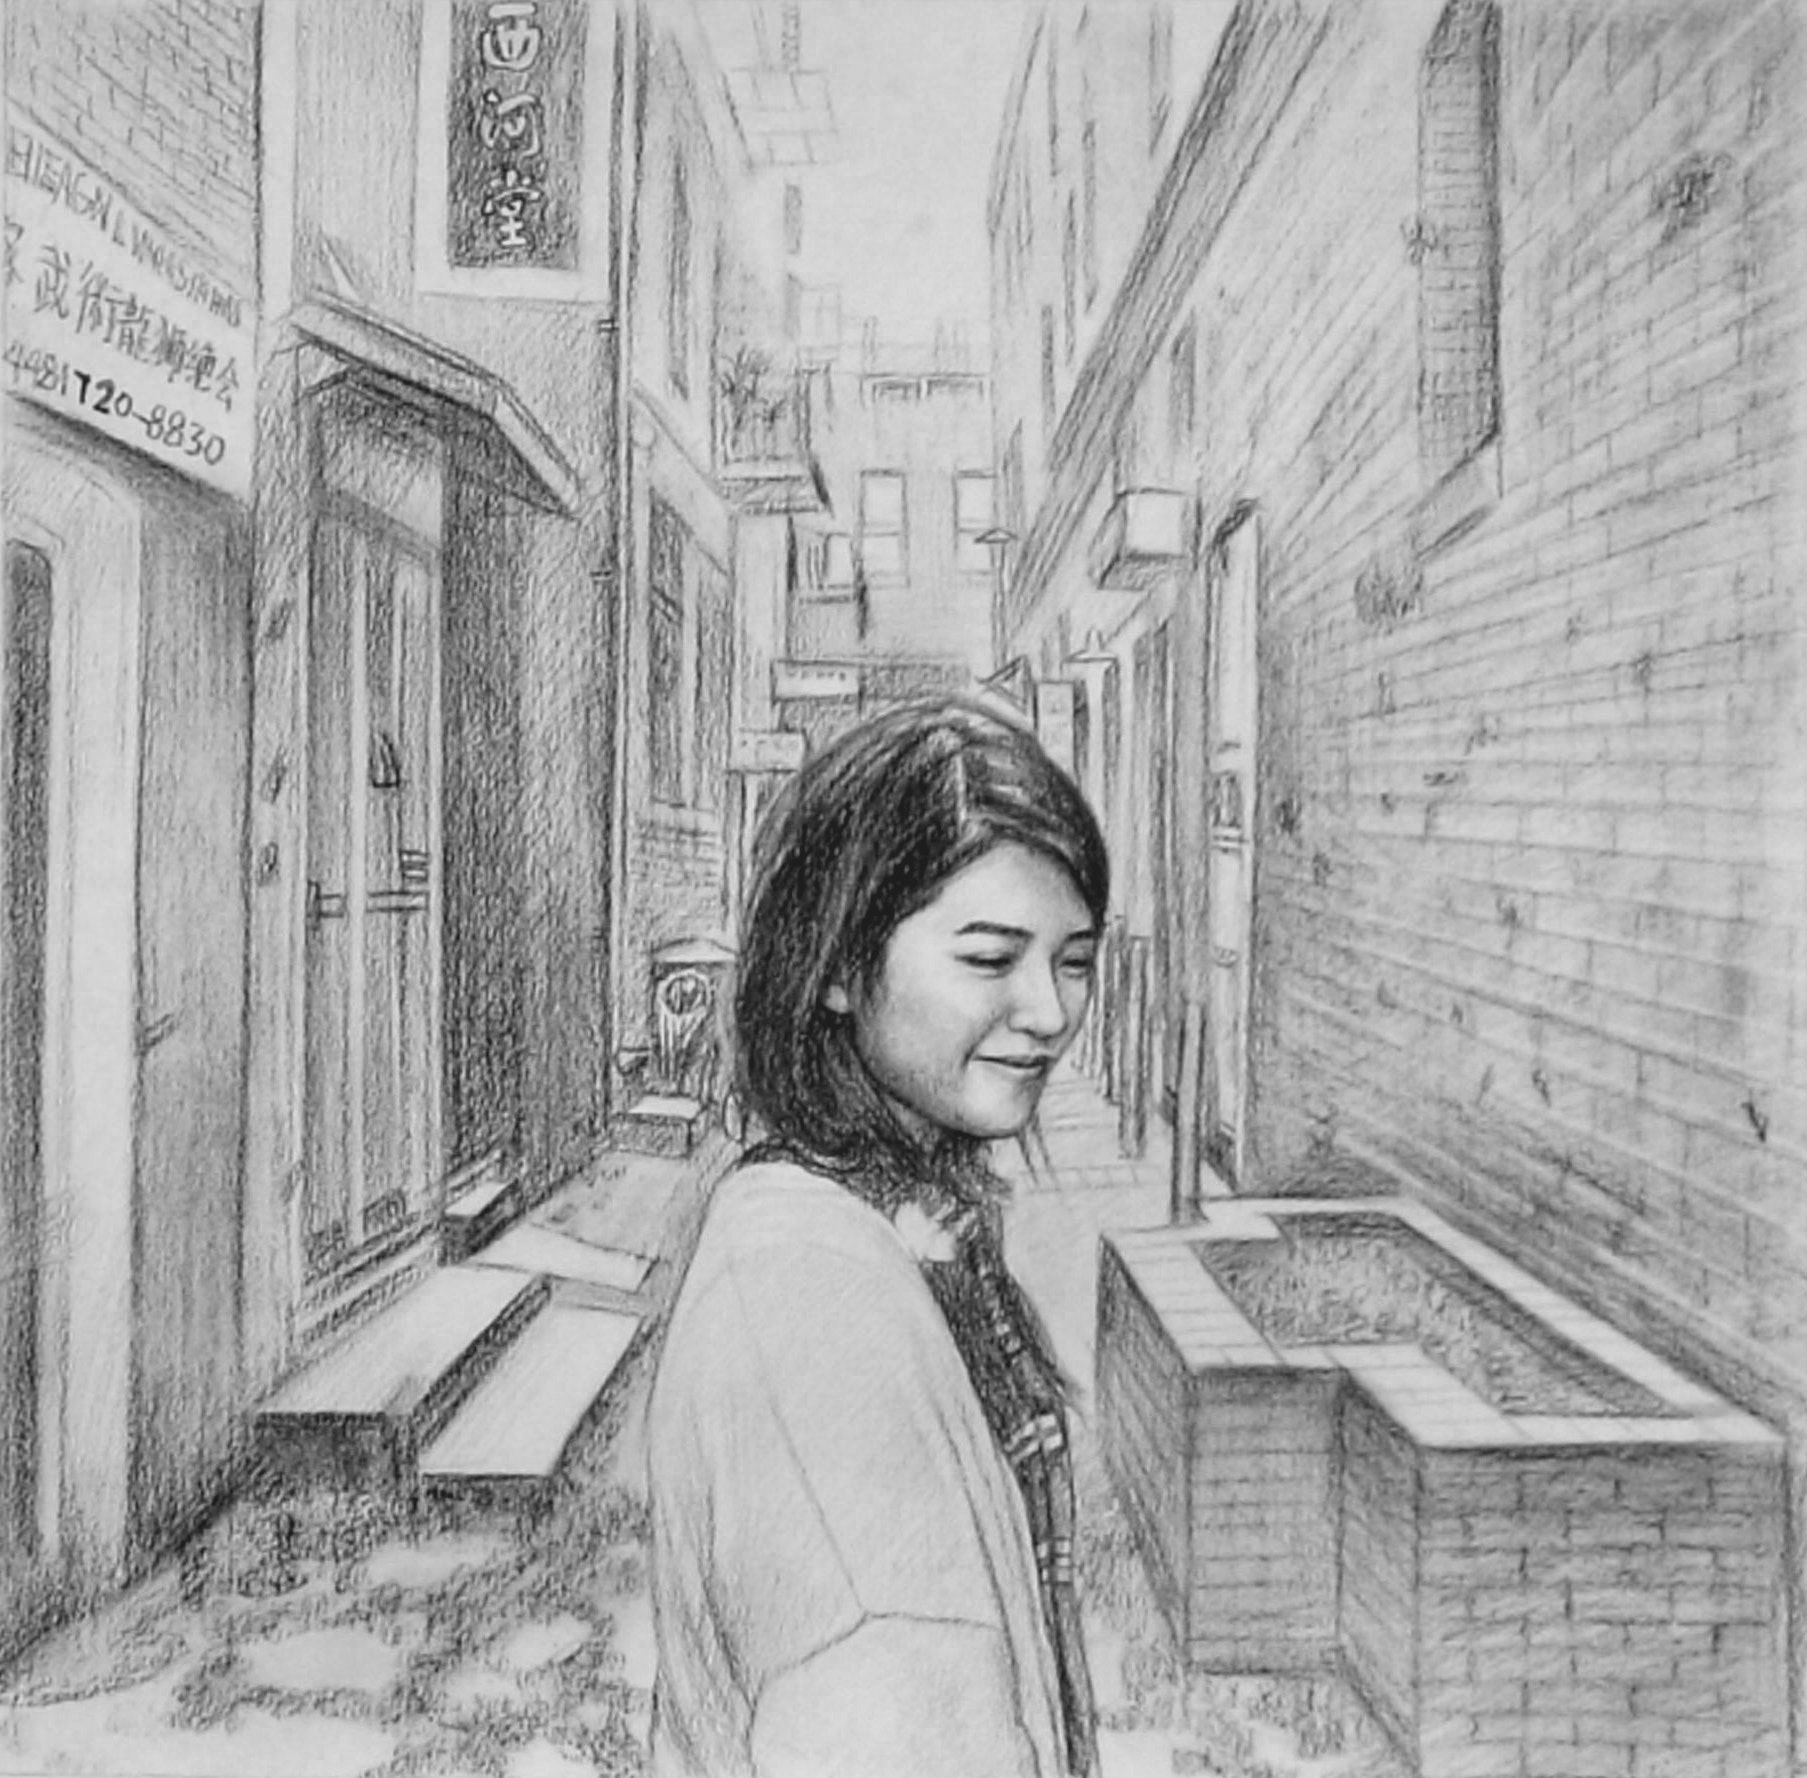 Custom Hand-Drawn Girl in Chinatown Charcoal Drawing